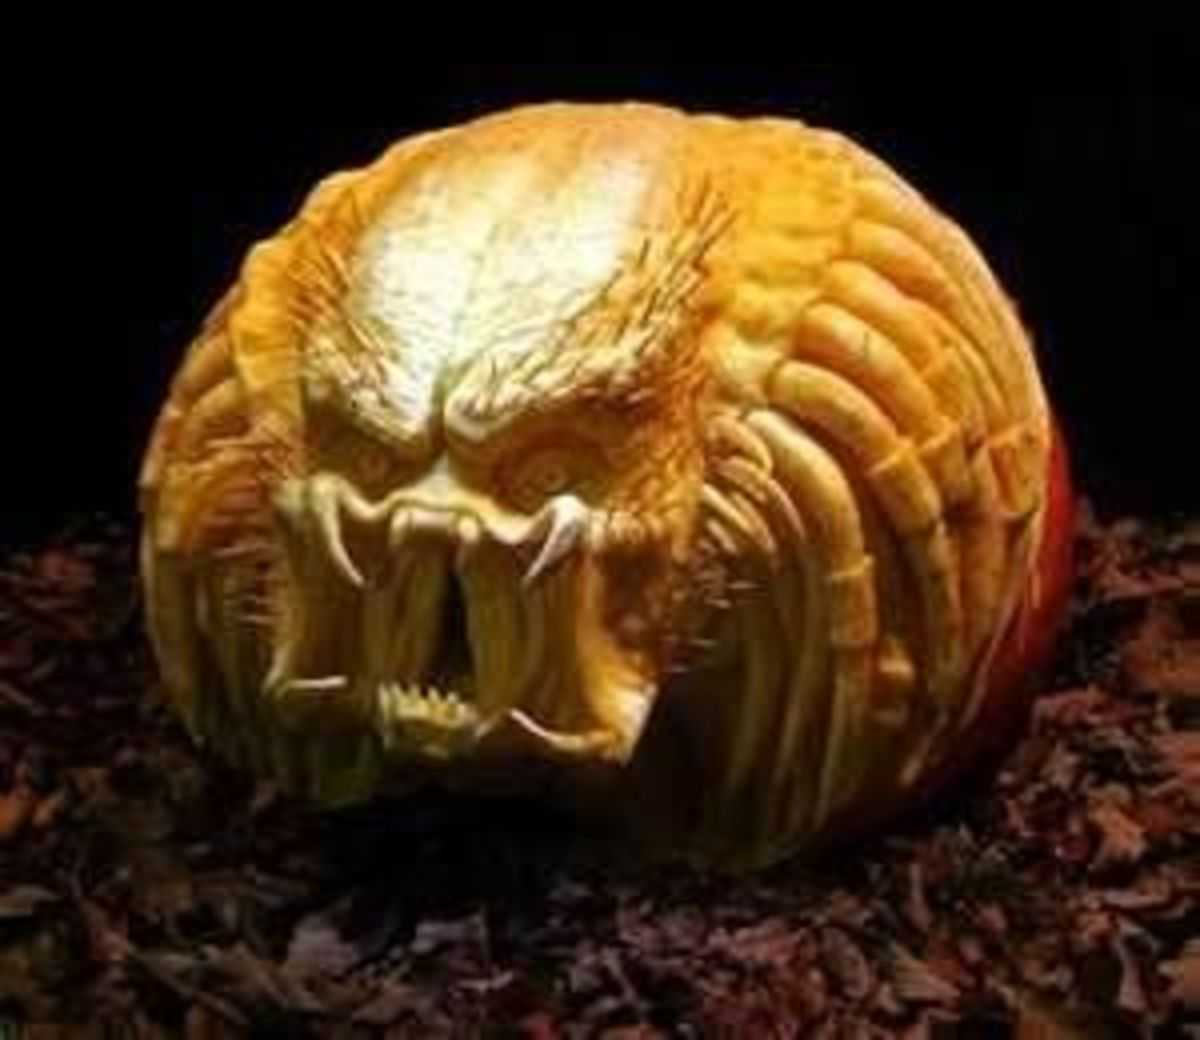 A simple pumpkin becomes a frightening monster in the hands of an expert carver. Photo shared on Flickr.